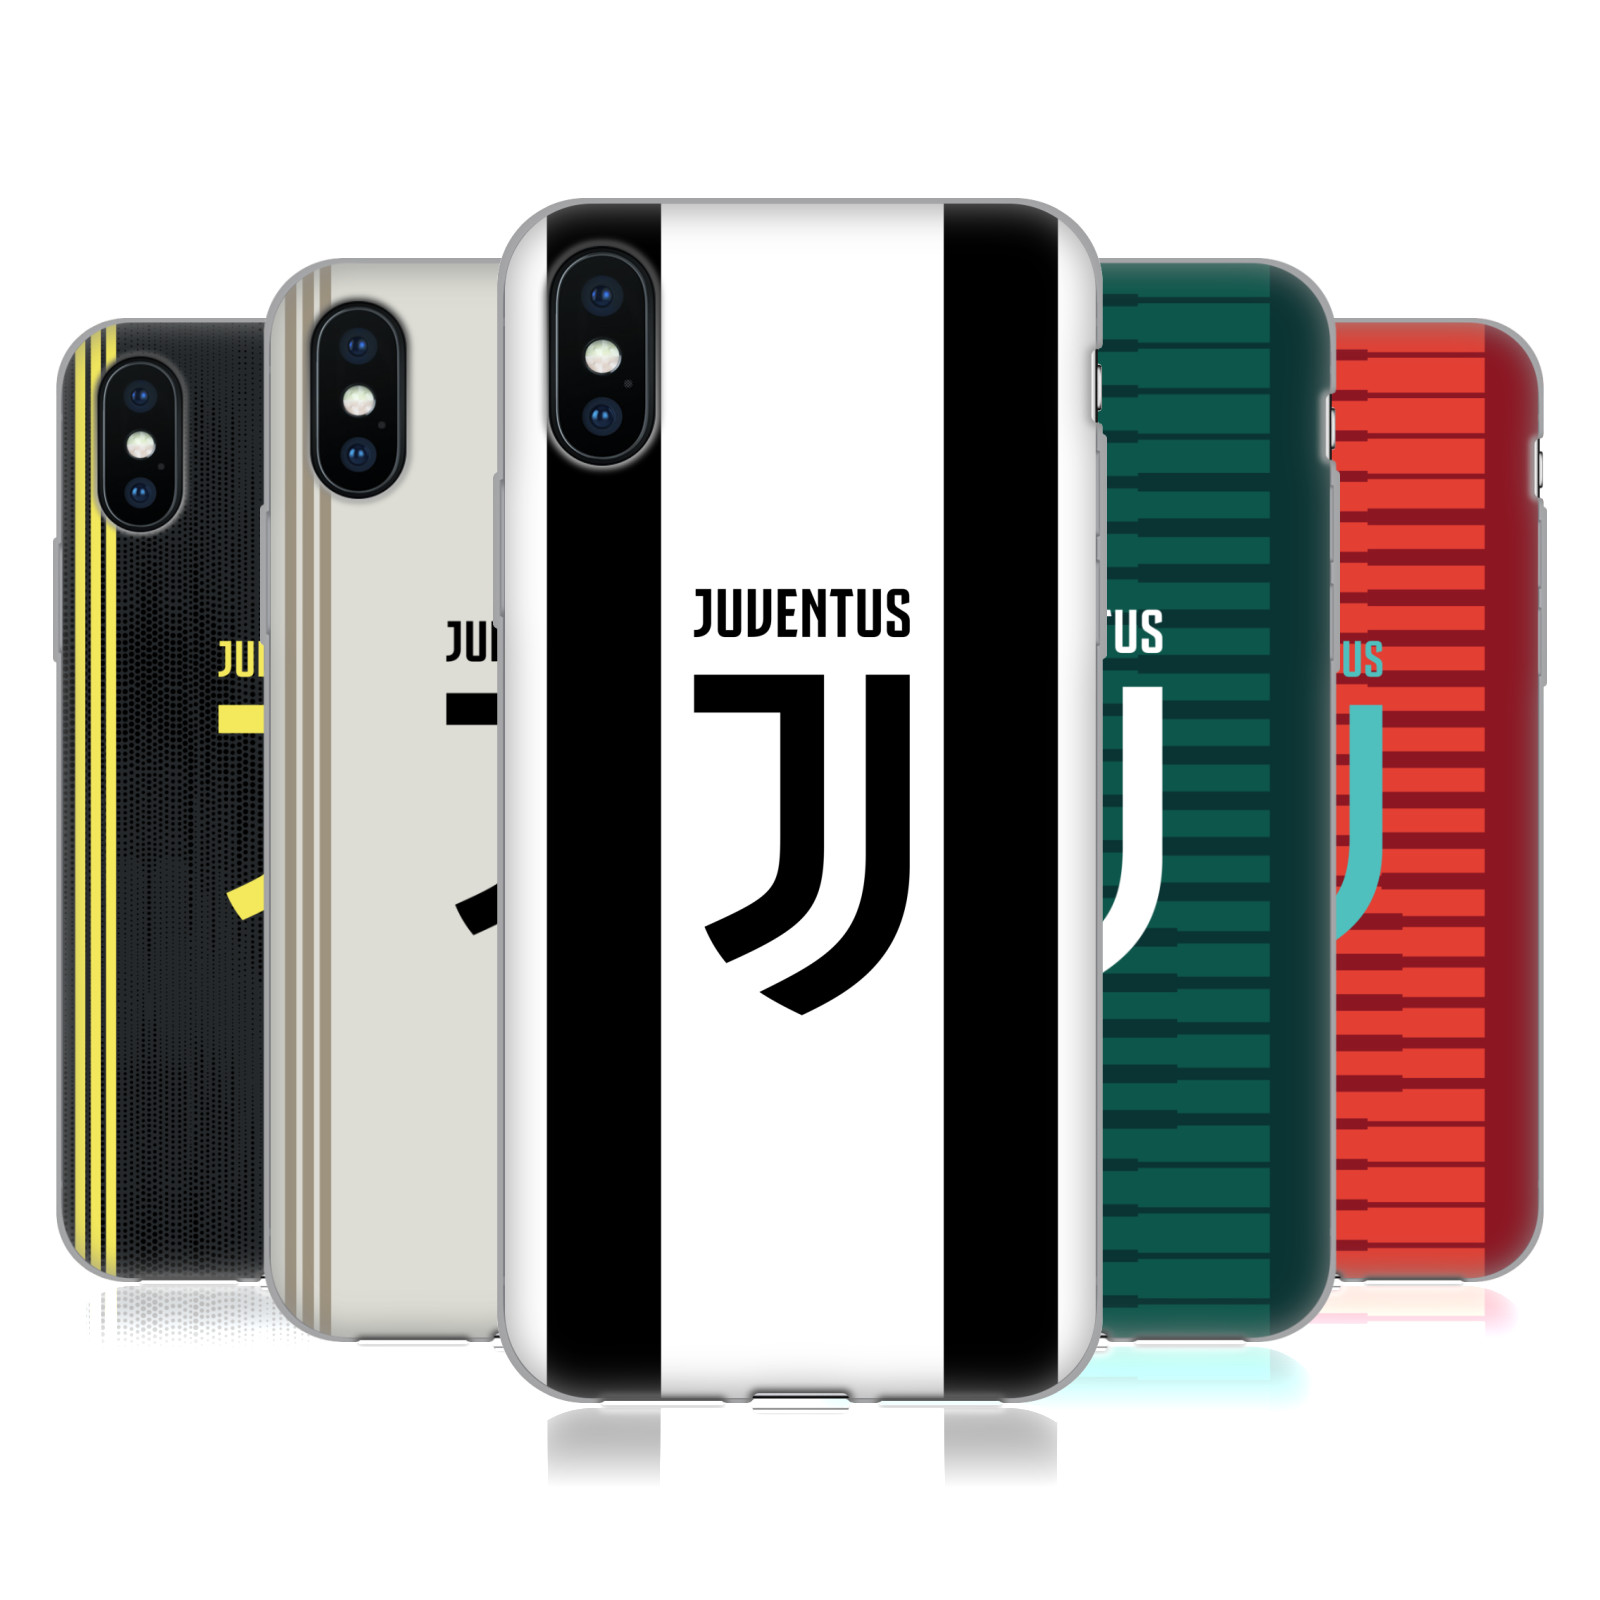 Juventus Football Club <!--translate-lineup-->2018/19 Race Kit<!--translate-lineup-->